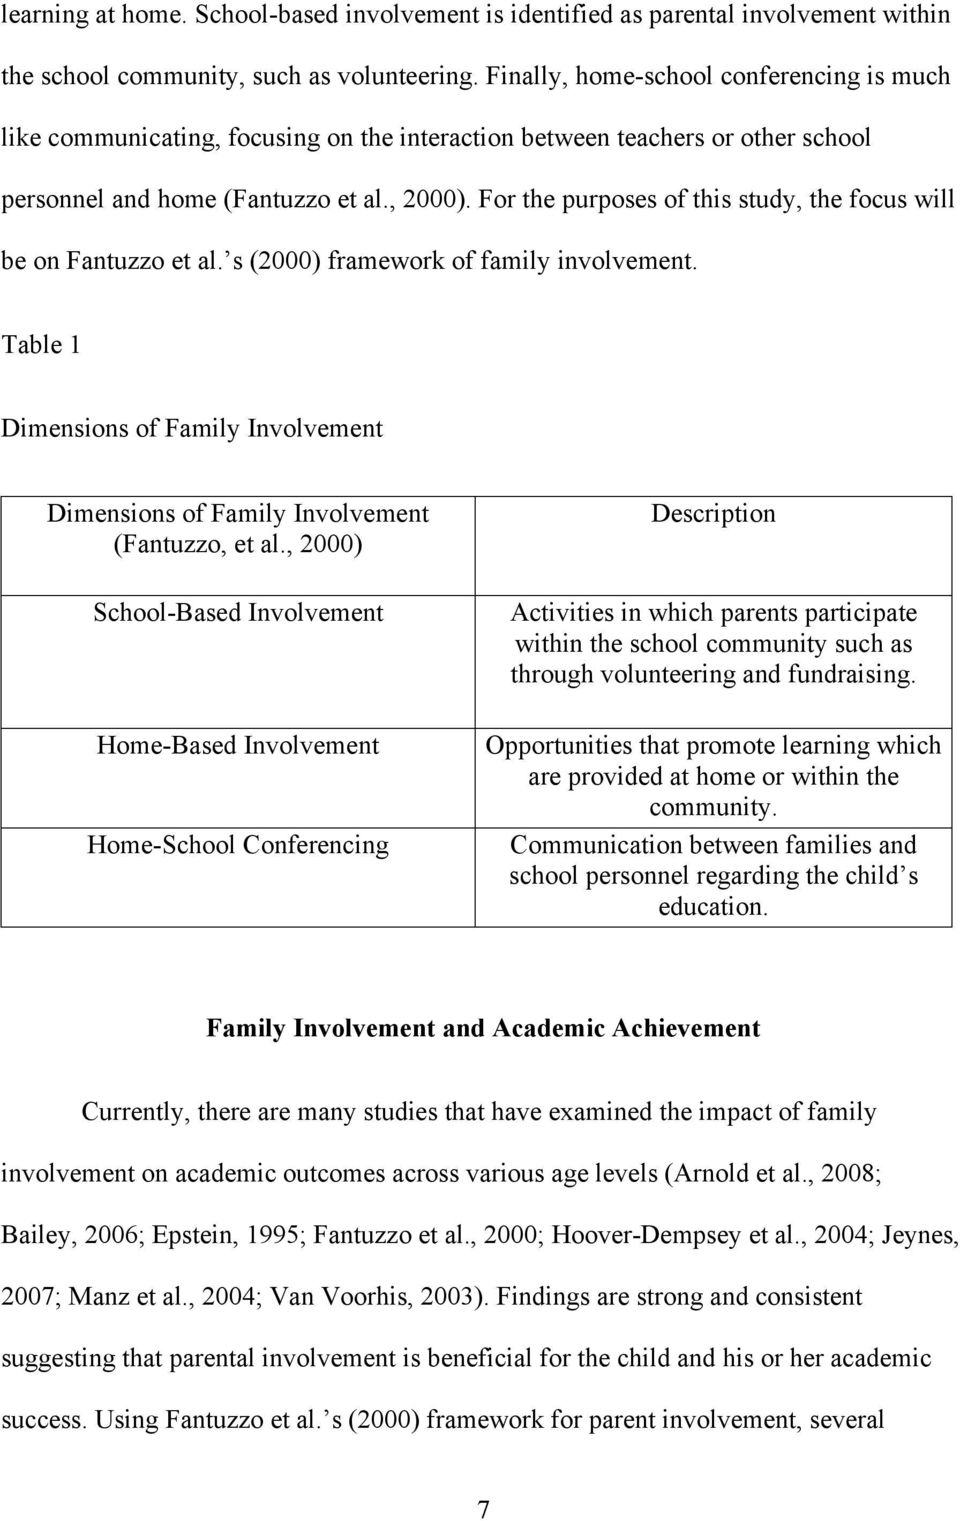 For the purposes of this study, the focus will be on Fantuzzo et al. s (2000) framework of family involvement.